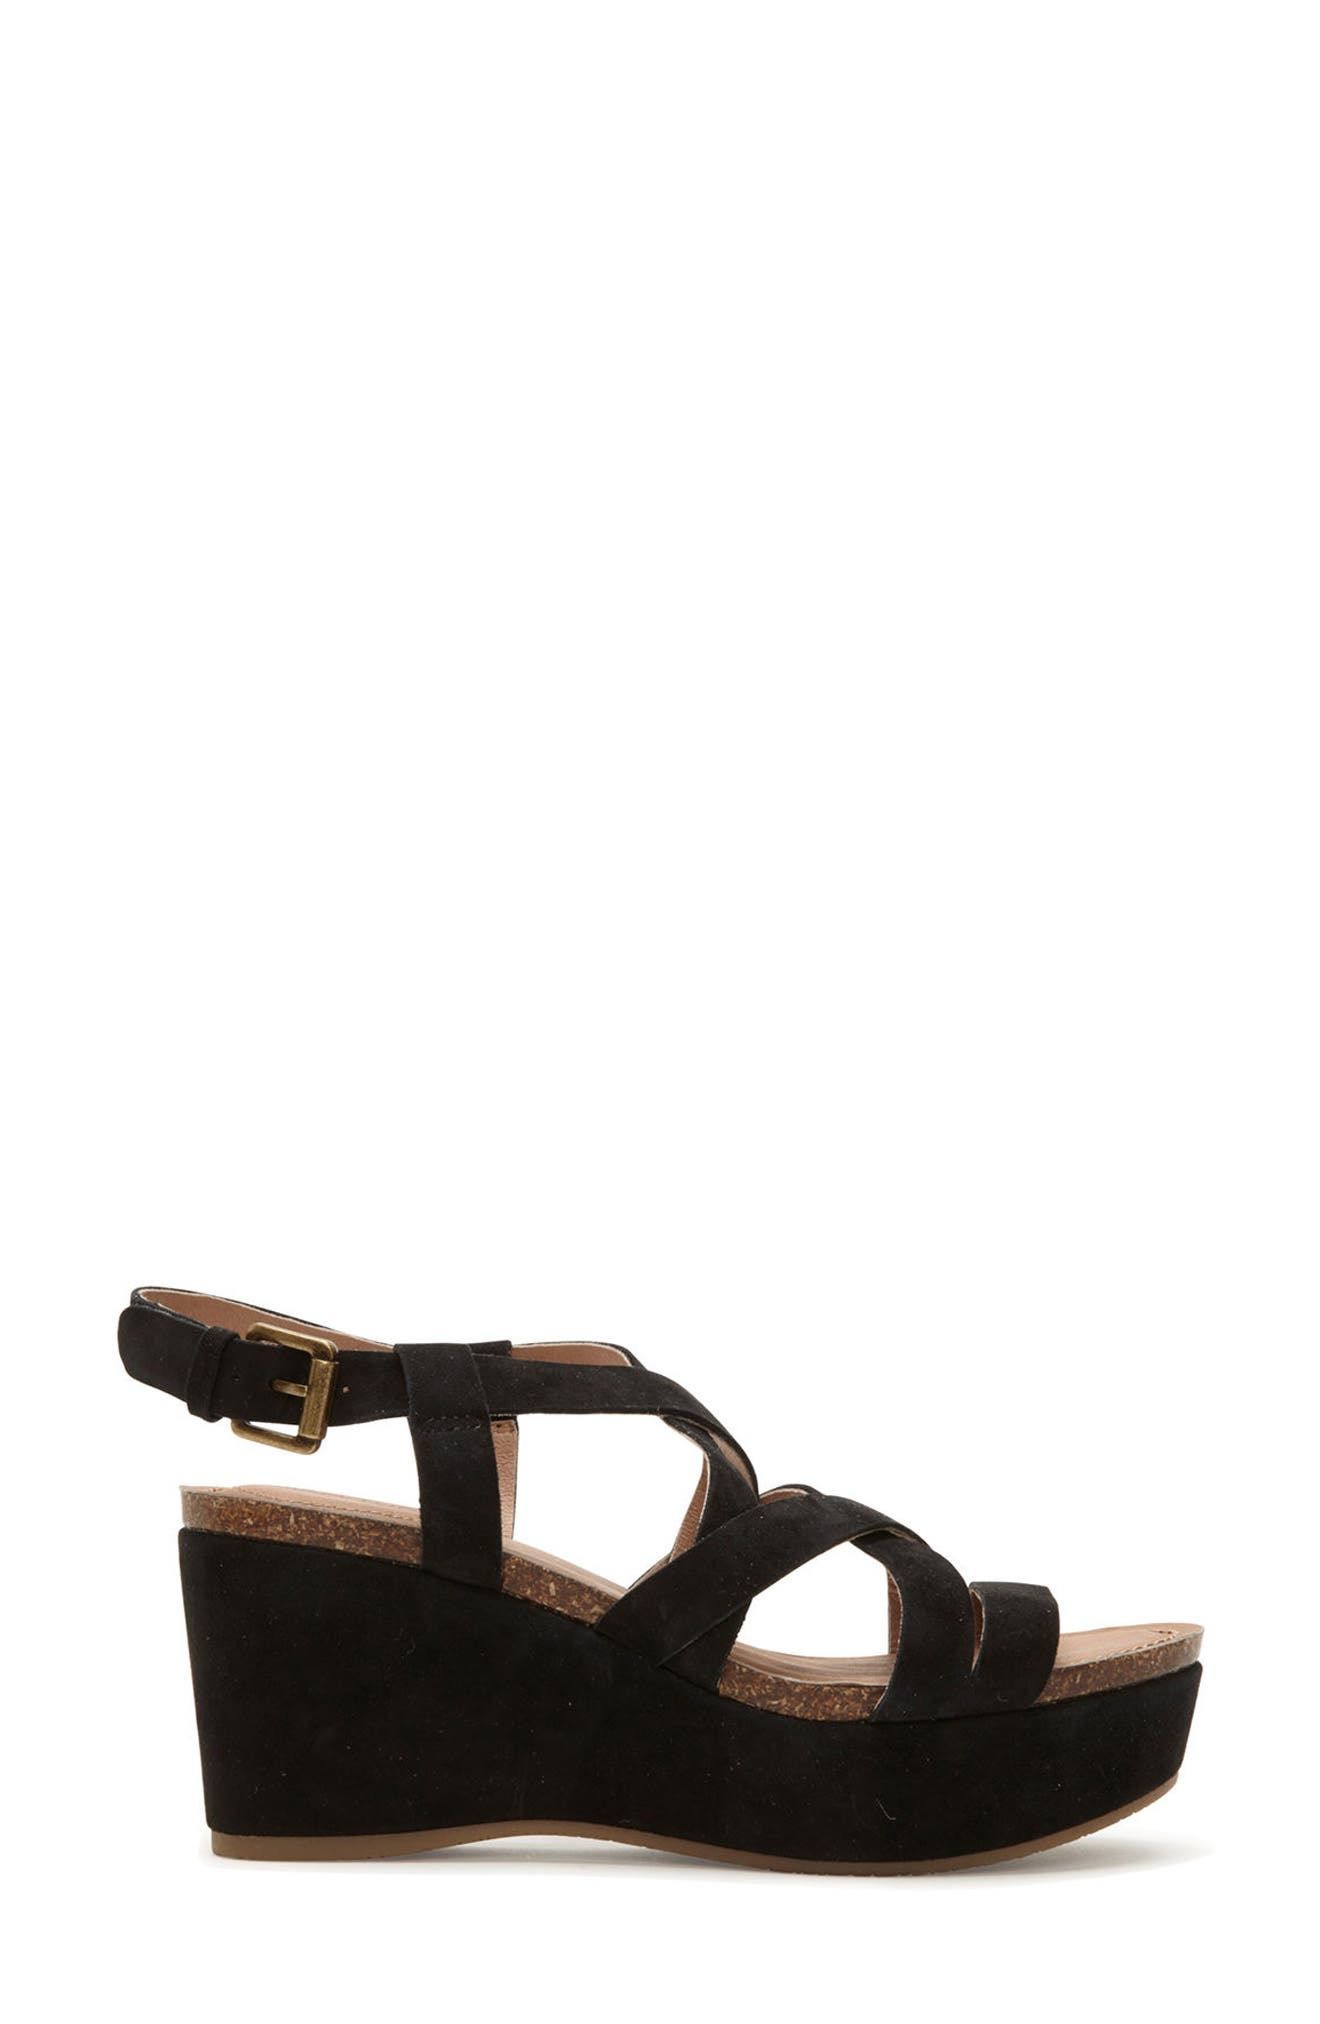 Adam Tucker Bria Strappy Sandal,                             Alternate thumbnail 3, color,                             Black Suede